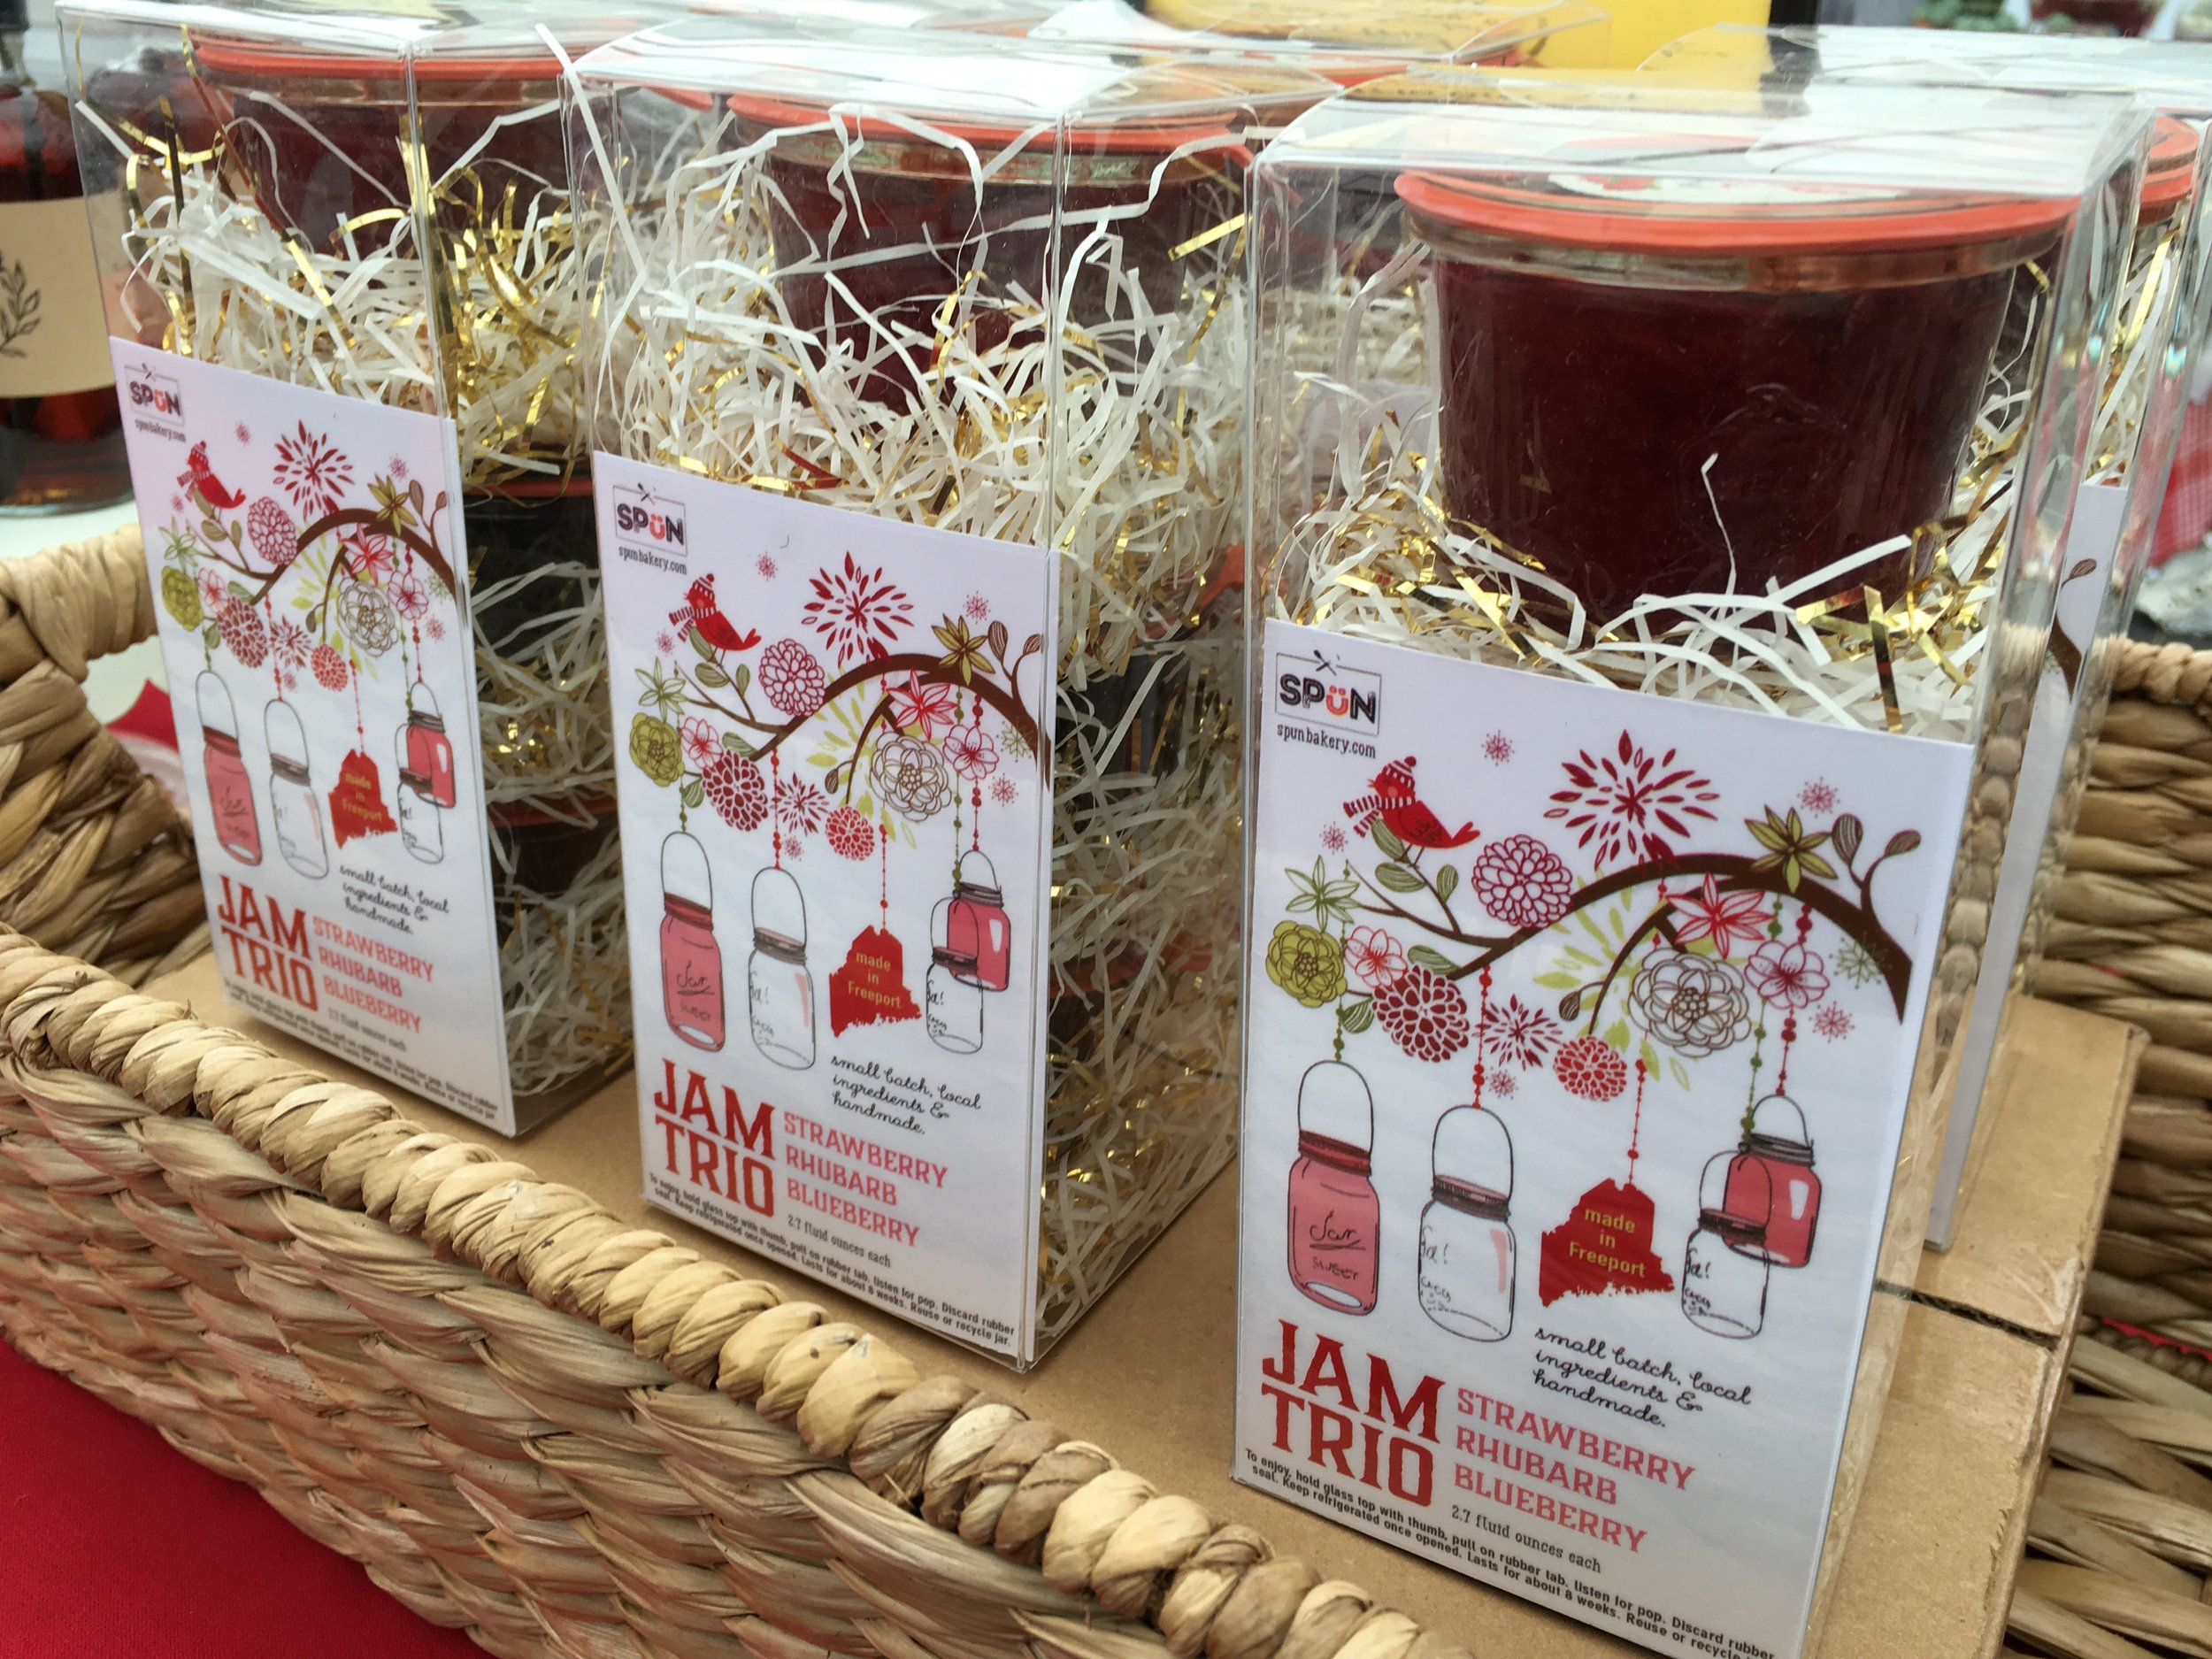 Our jam trio gift sets with handmade blueberry, strawberry and rhubarb jams.